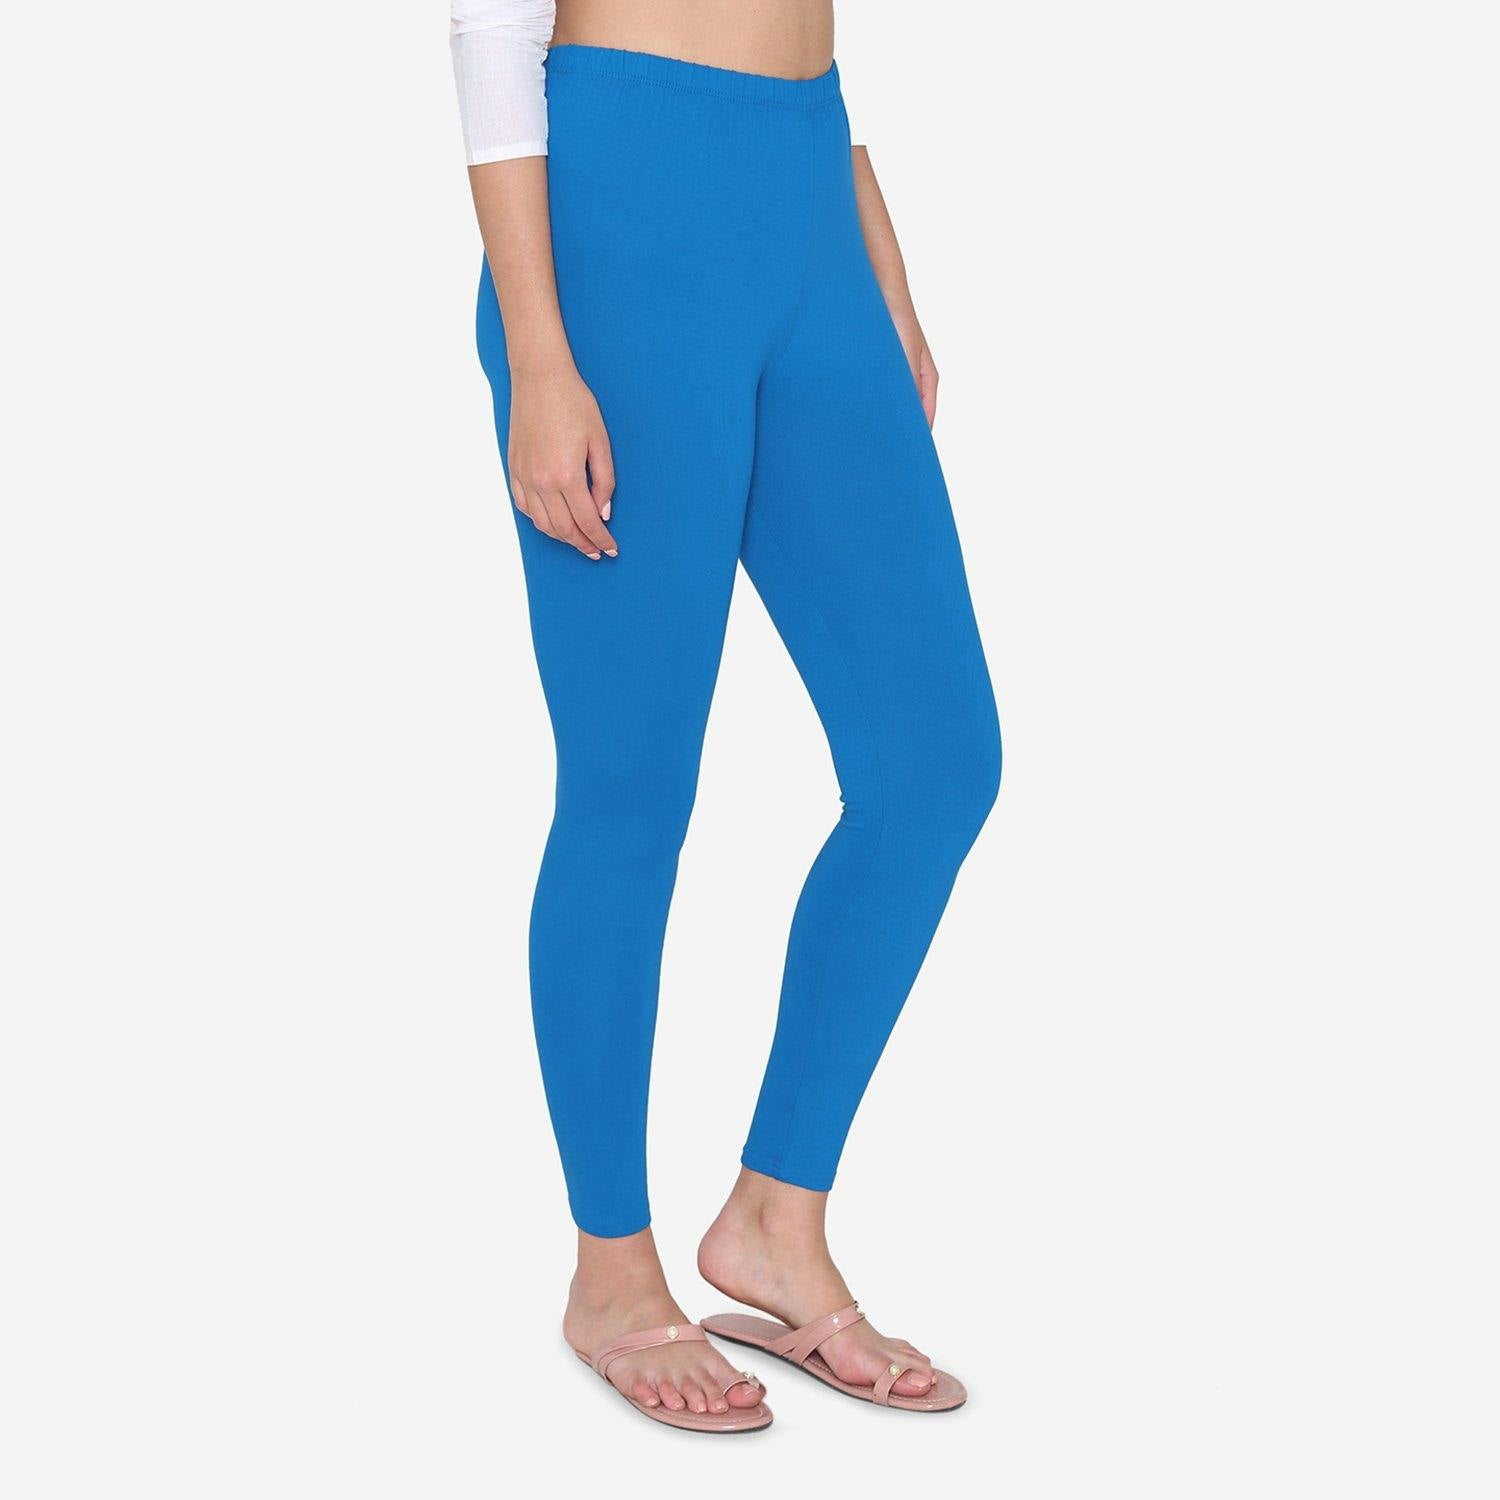 Vami Women's Cotton Ankle legging - Coral Blue